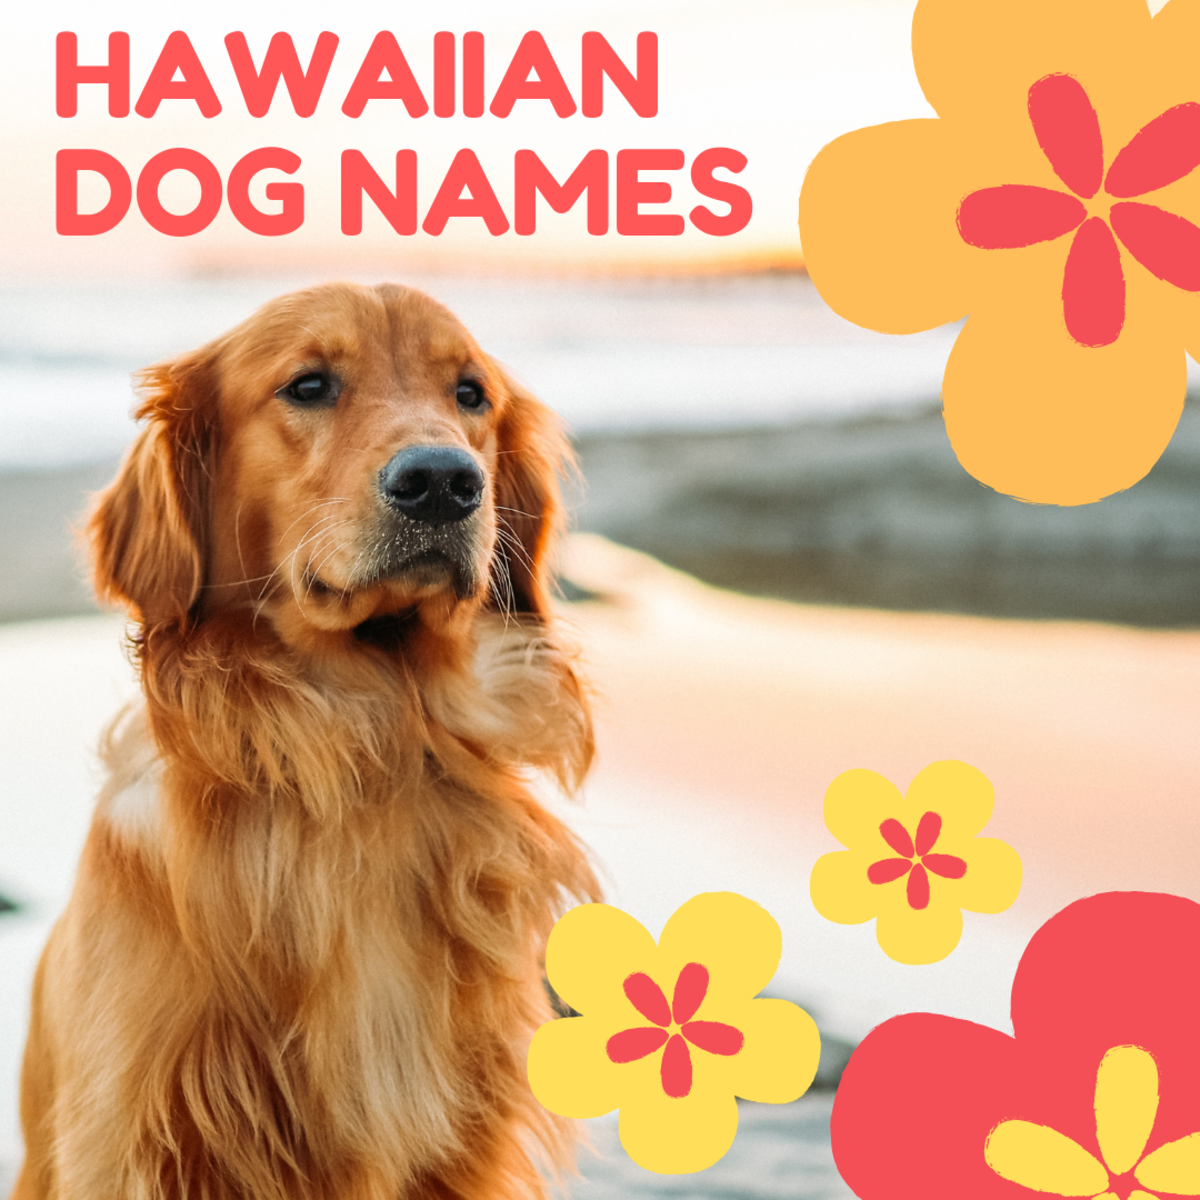 100+ Beautiful Hawaiian Dog Names